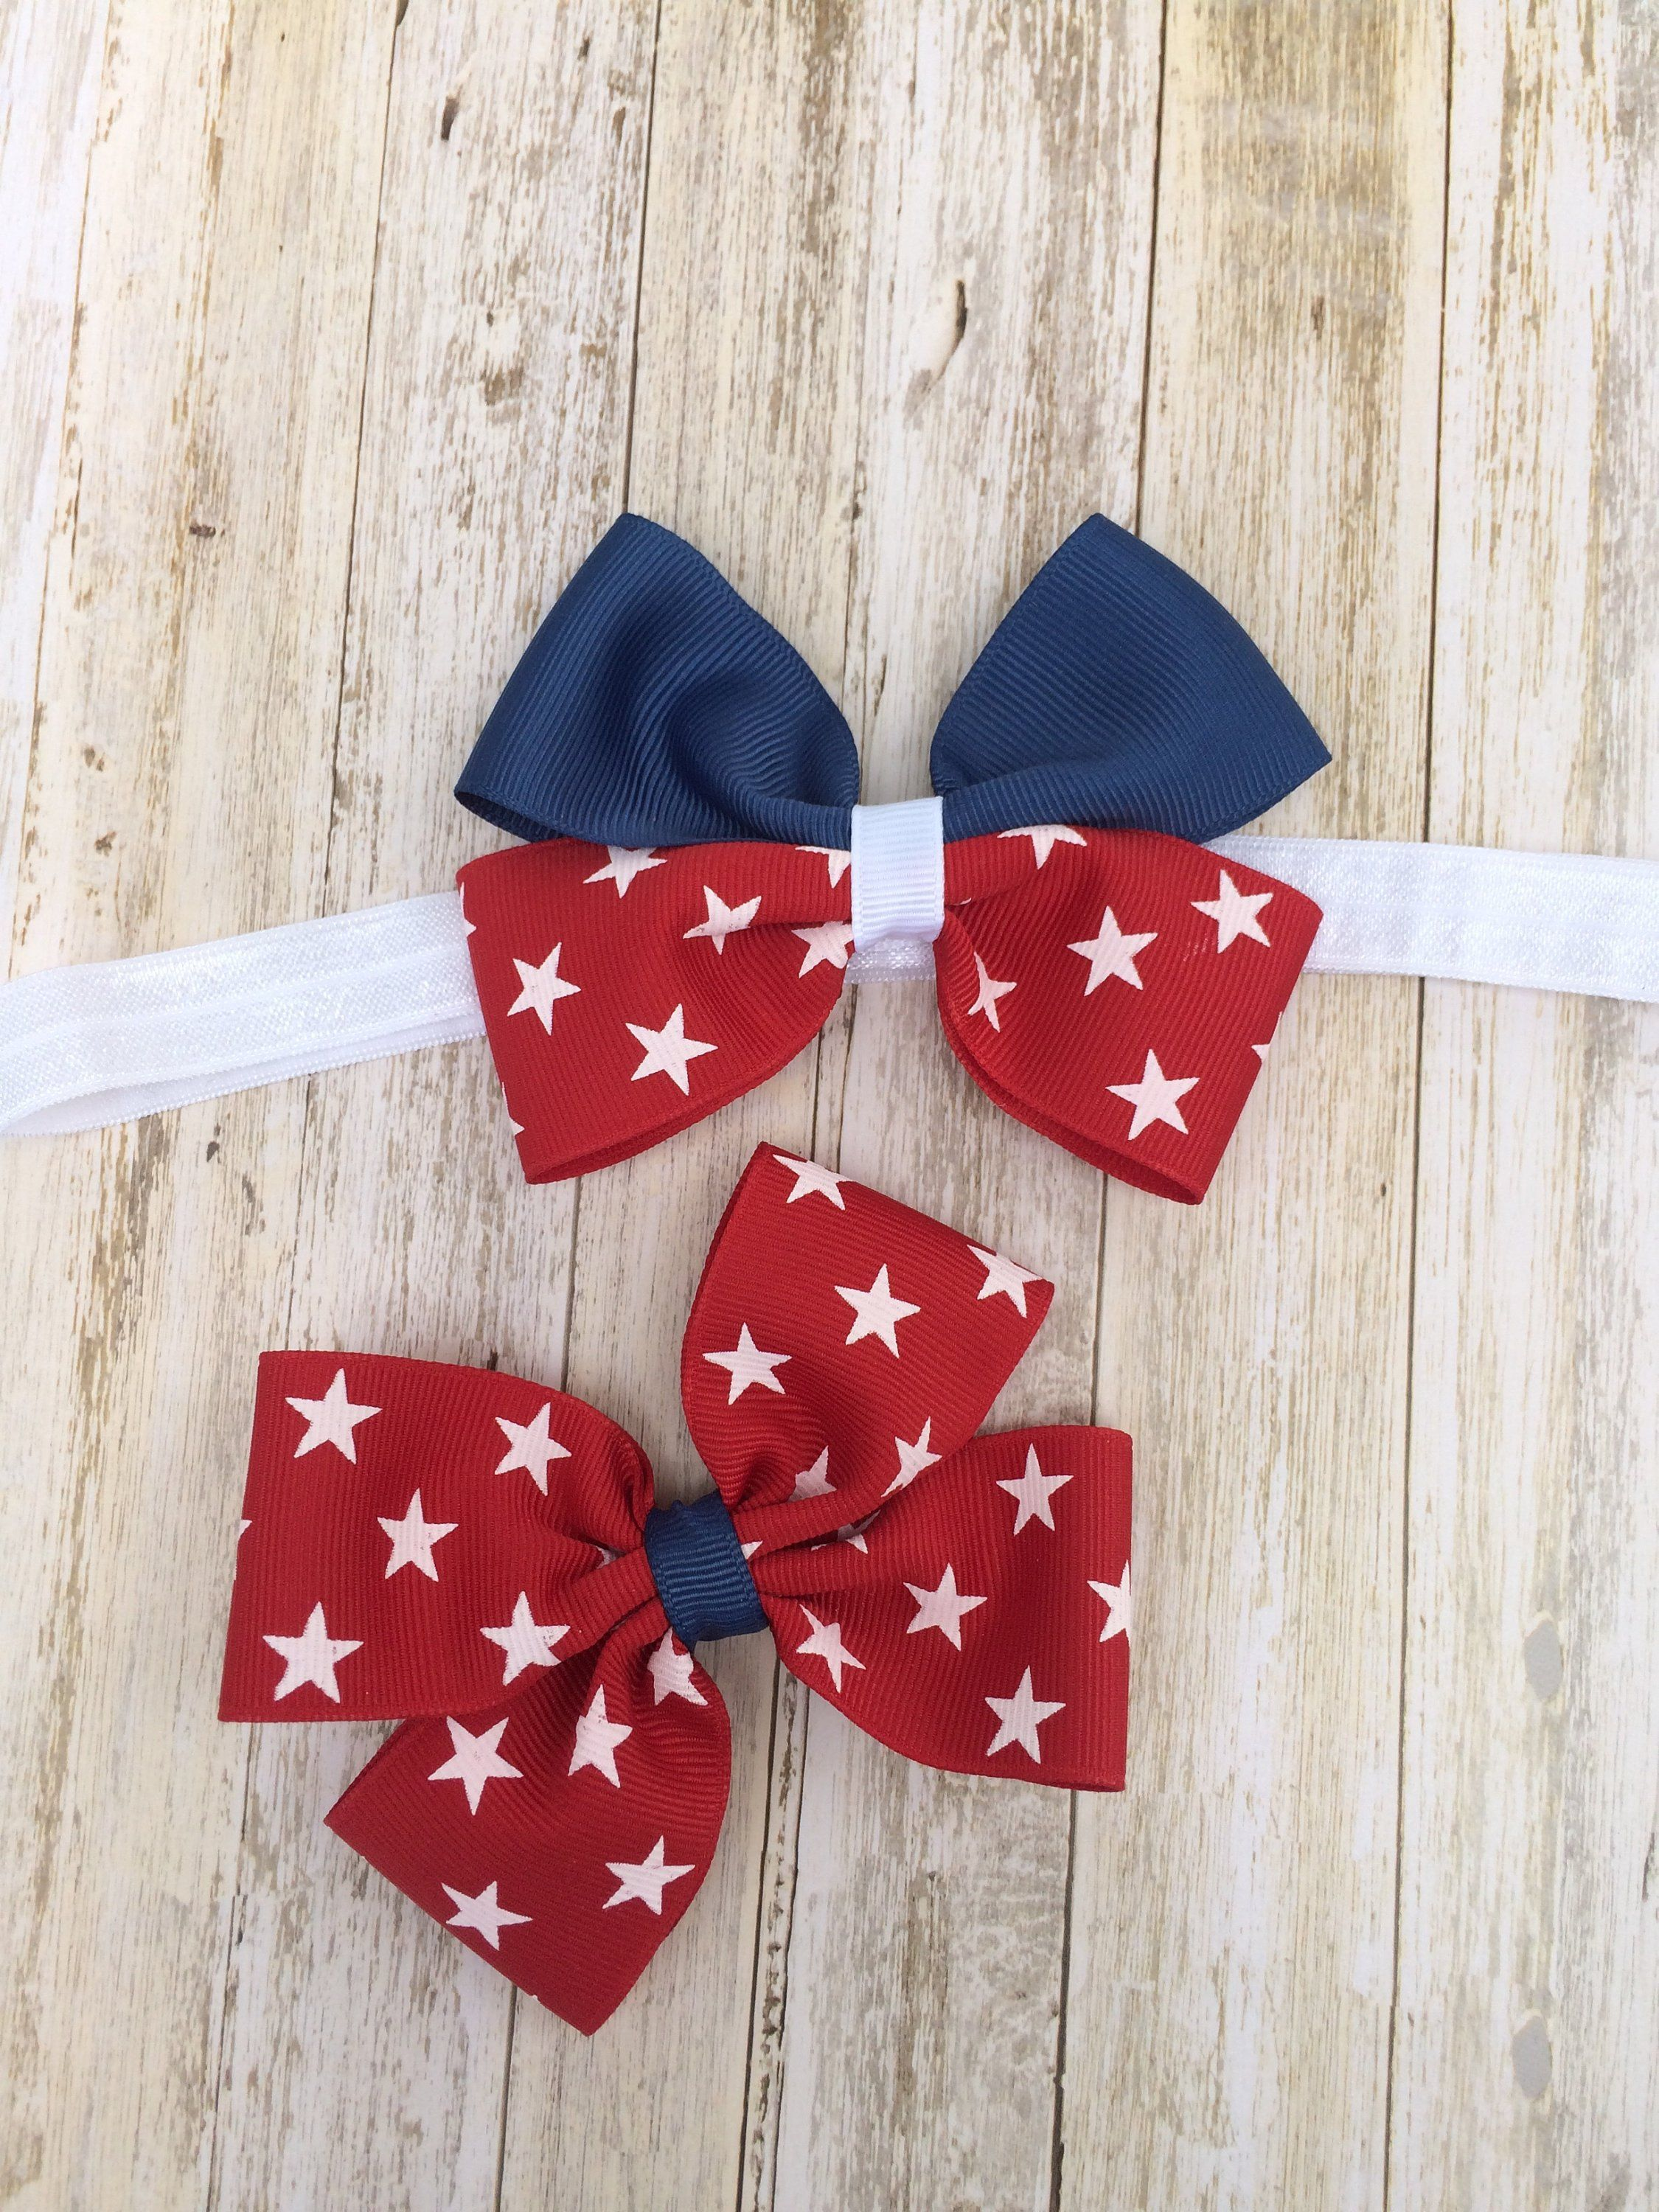 Th of July boutique bow Red white blue baby girl headband